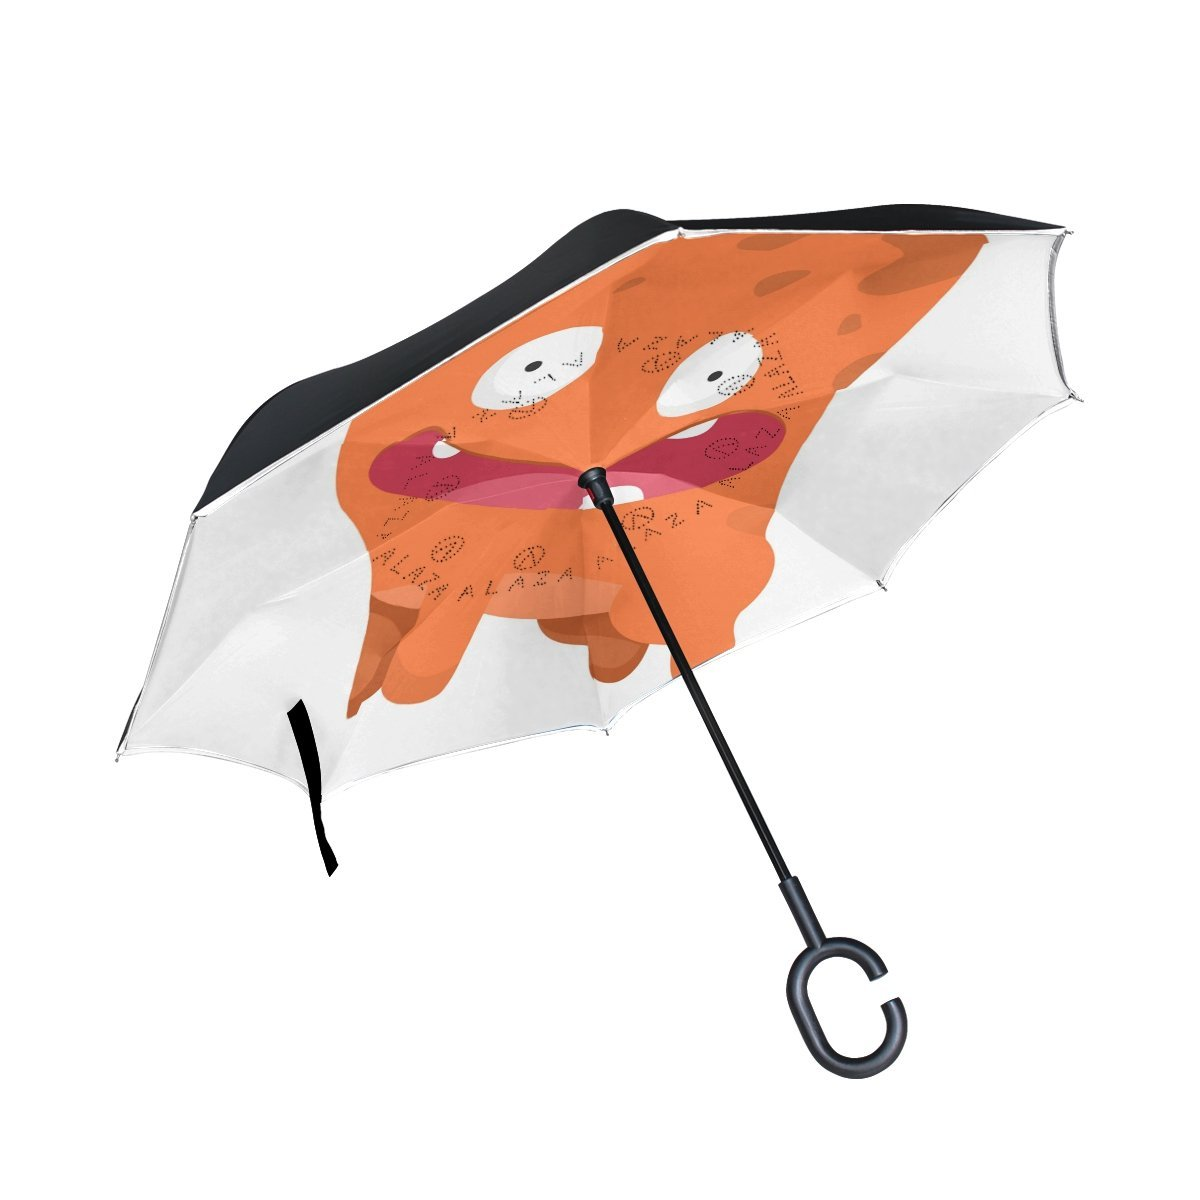 Upside Down Umbrellas with C-Shaped Handle for Women and Men Reverse Inverted Windproof Cute Sloth Wildlife Animal Umbrella Double Layer Inside Out Folding Umbrella